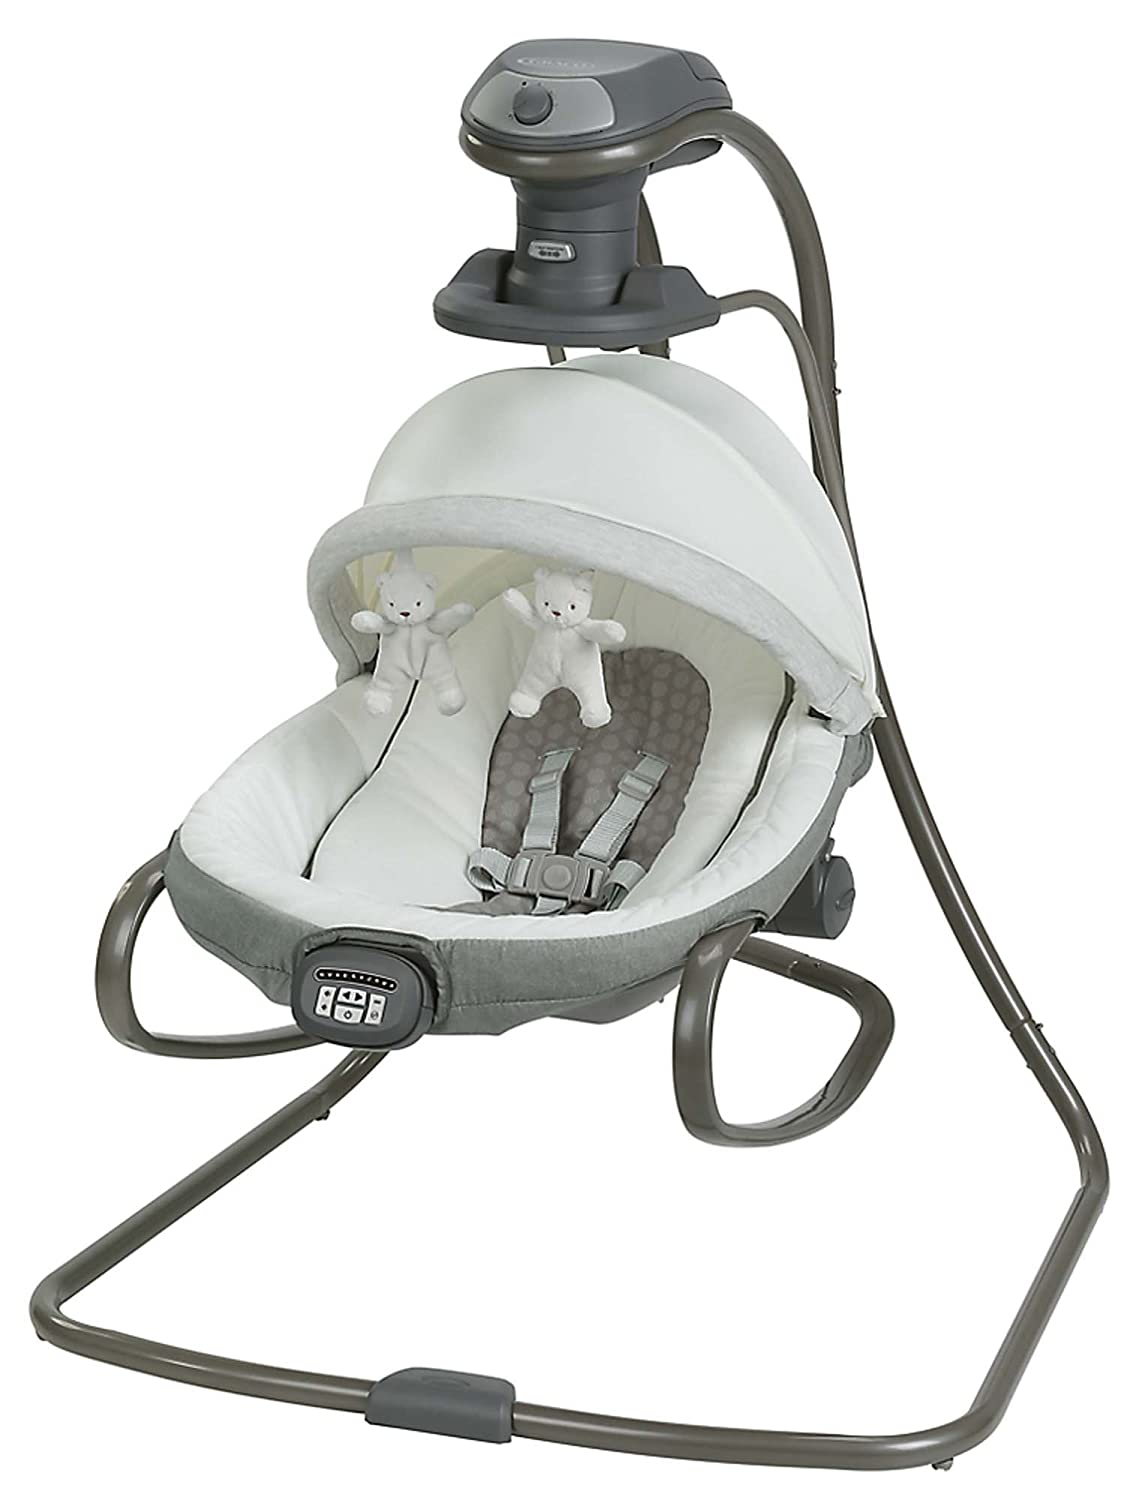 Graco Duet Oasis With Soothe Surround Baby Swing, Davis by Graco